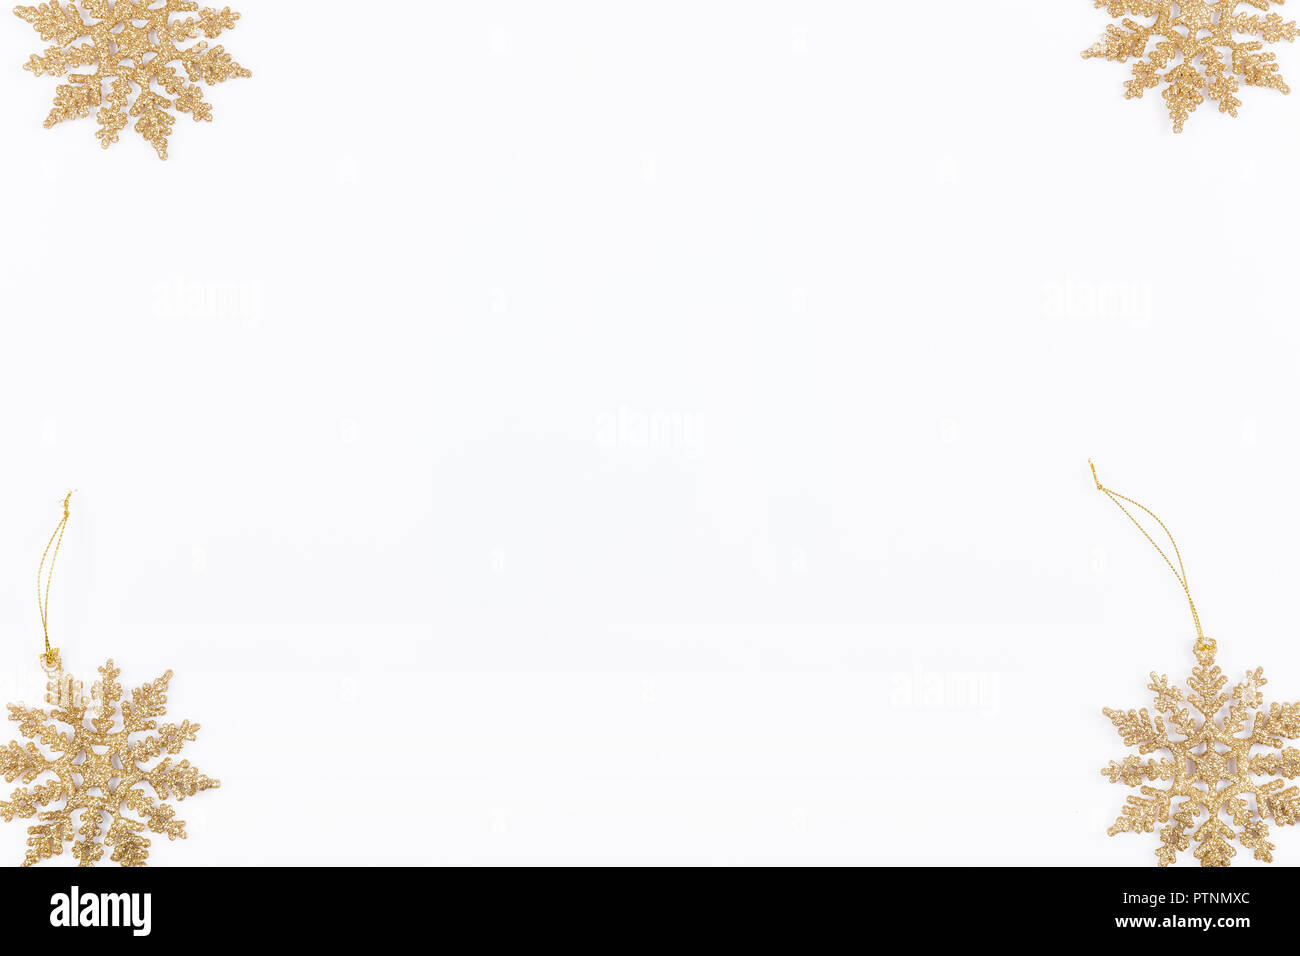 christmas or new year frame composition christmas gold decorations on white background with empty copy space for text holiday and celebration concept for